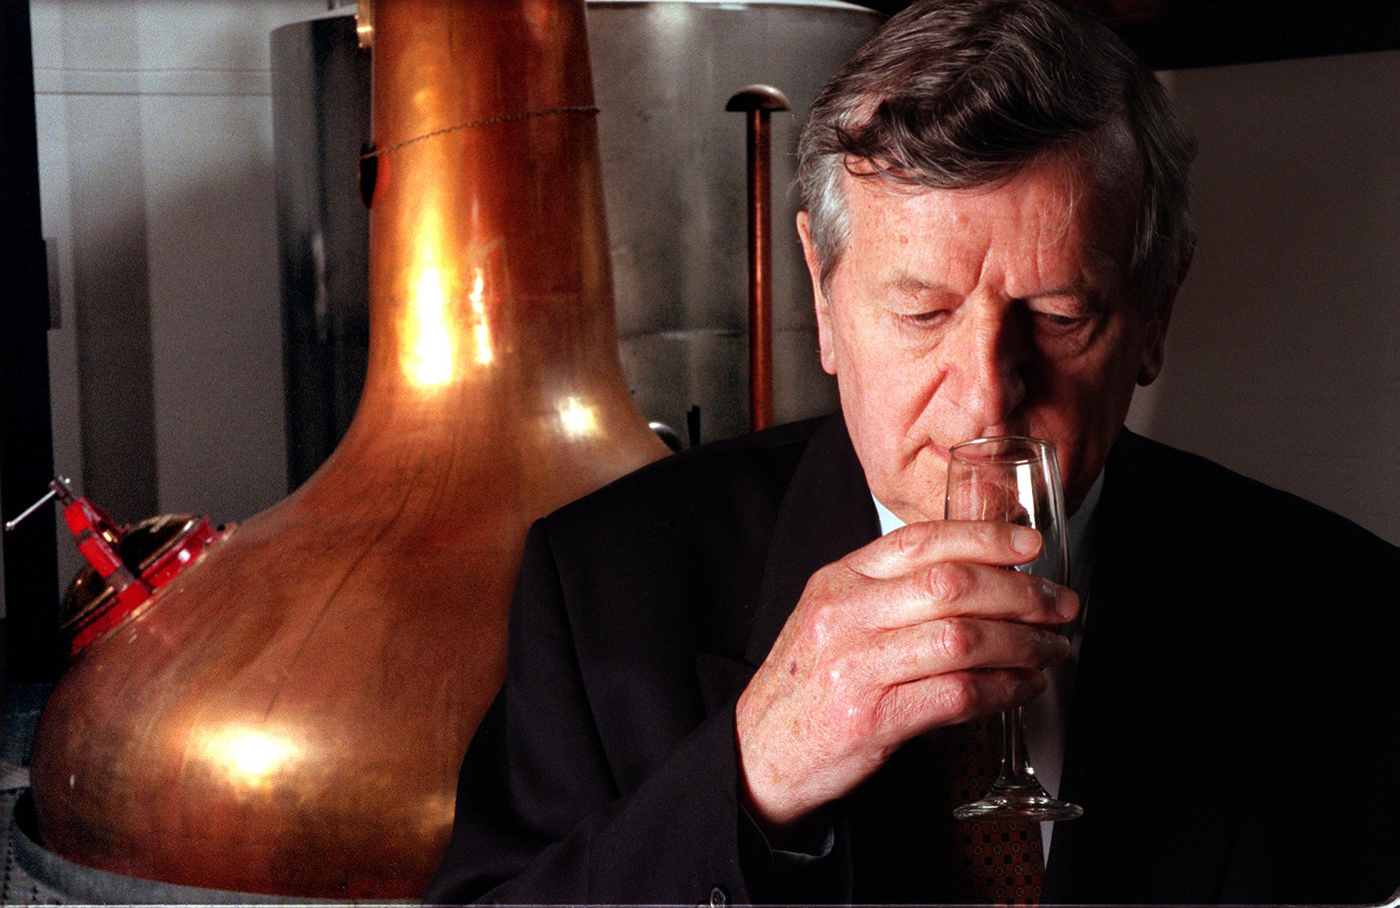 Harold Currie, formerly managing director of Chivas Regal, and founder of The Isle of Arran Distillery.